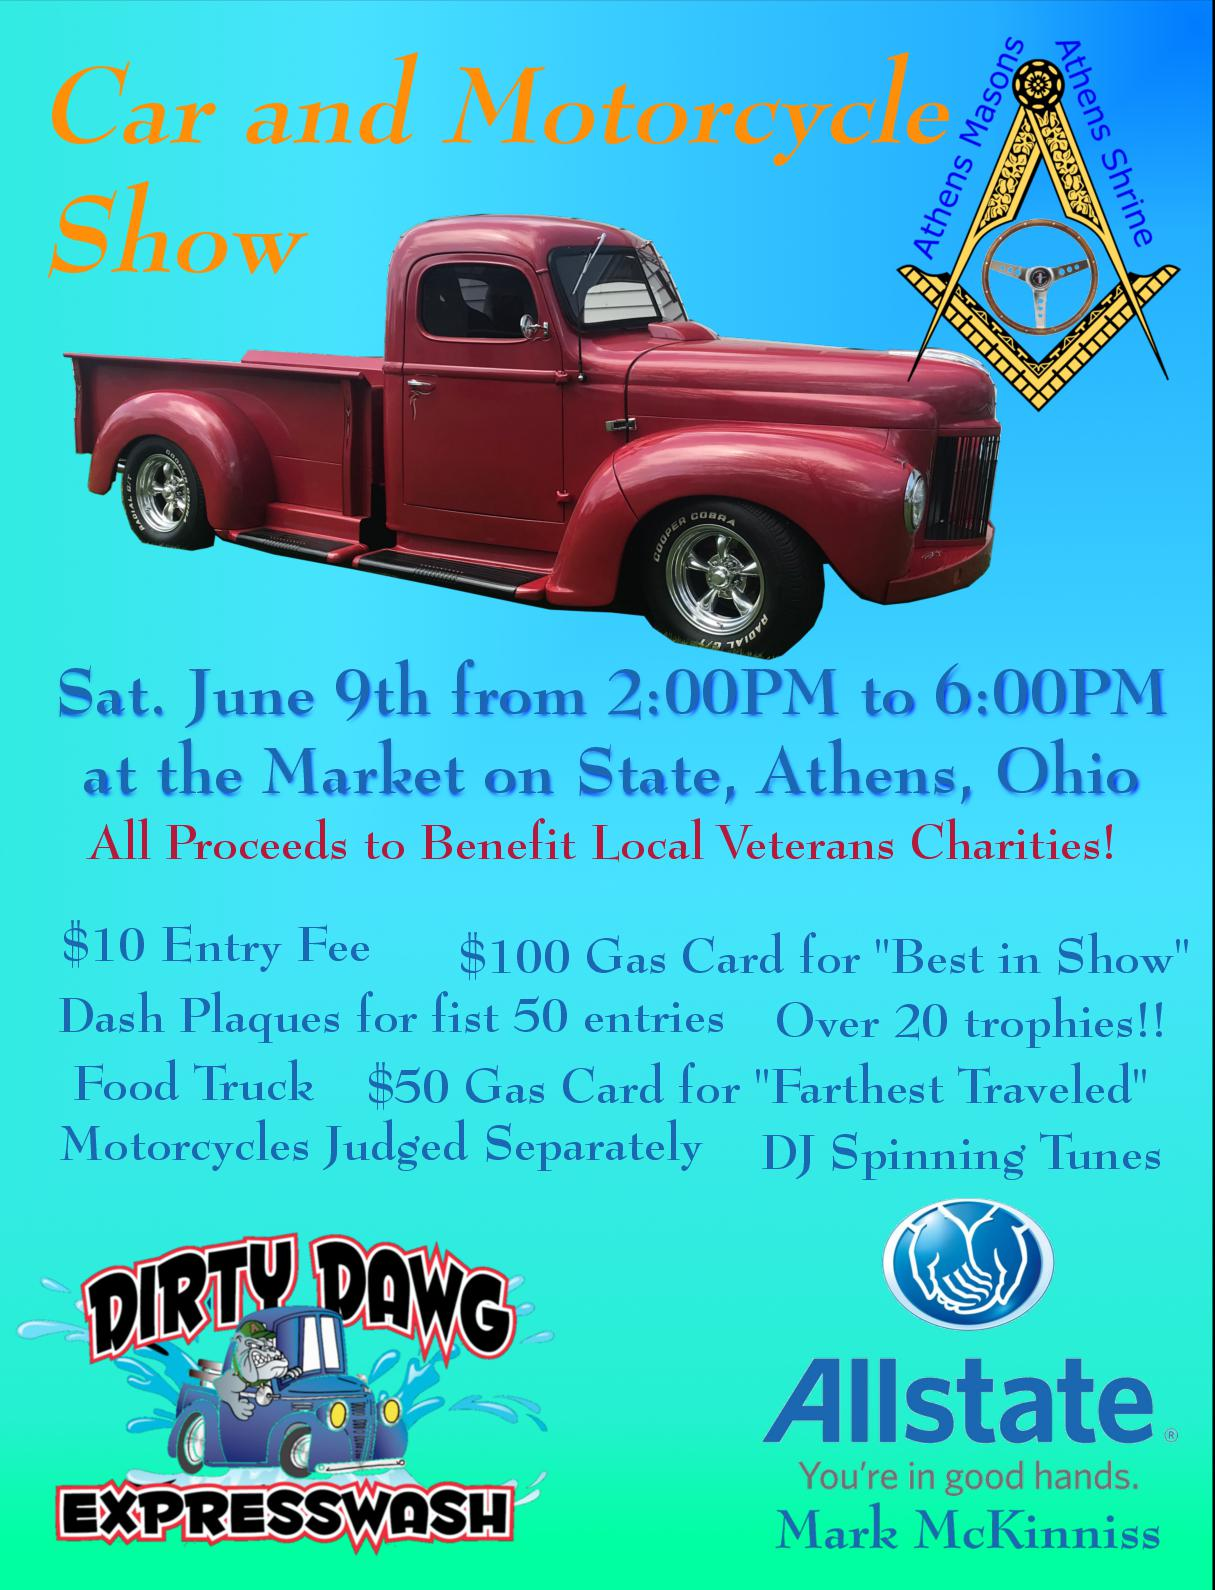 Car Motorcycle Show To Benefit Local Veterans Charities WOUB Digital - Homemade car show trophies